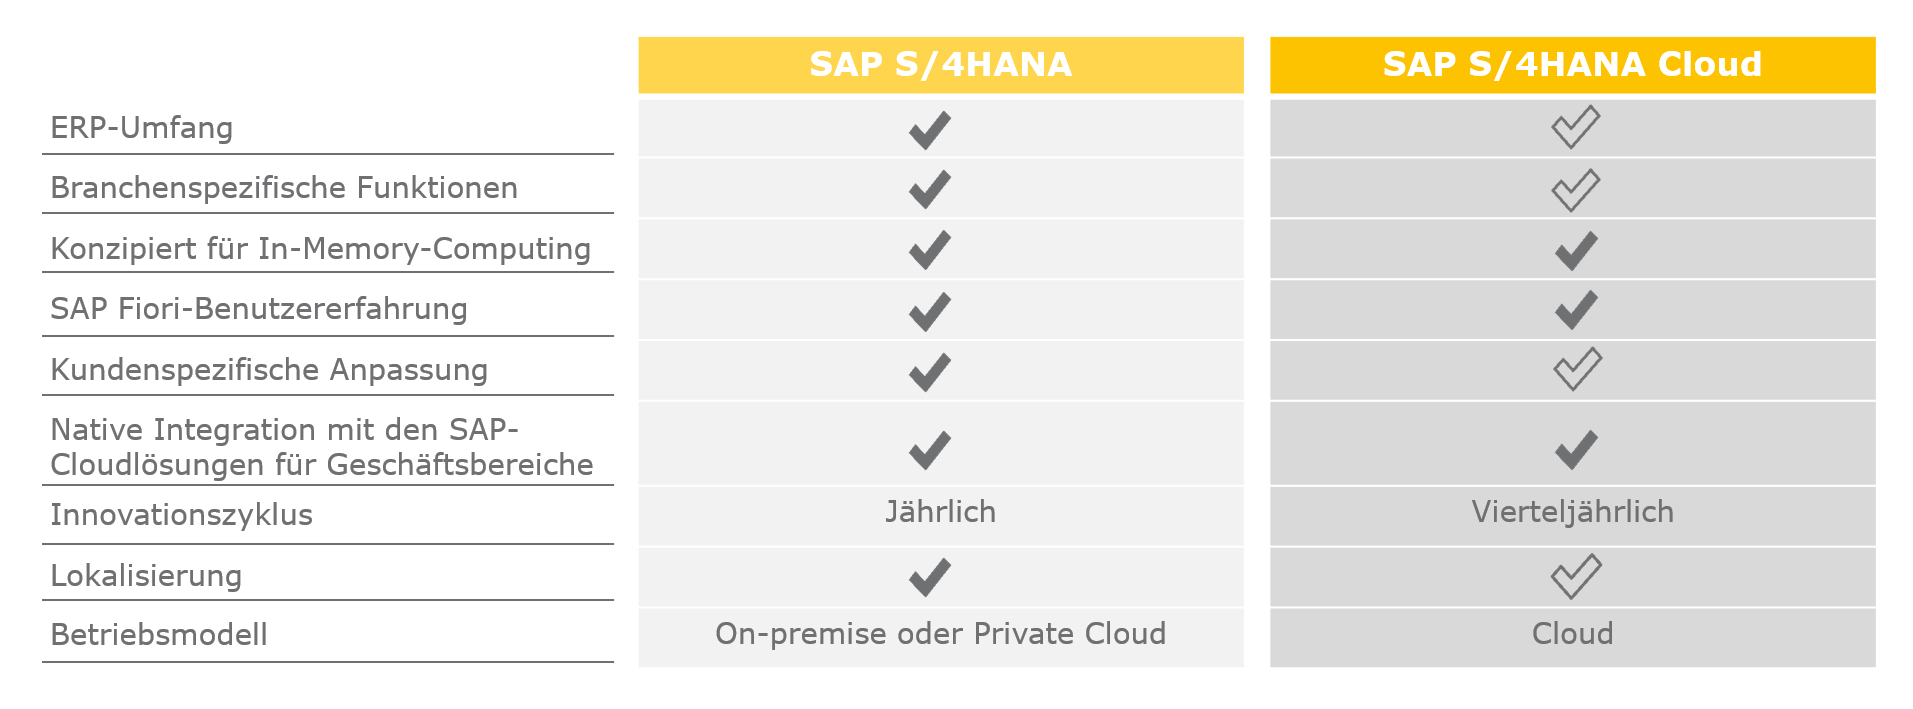 News Grafik SAP S4HANA vs. SAP S4HANA Cloud - SAP S/4HANA Public Cloud: Immer die neuesten SAP S/4HANA-Innovationen nutzen